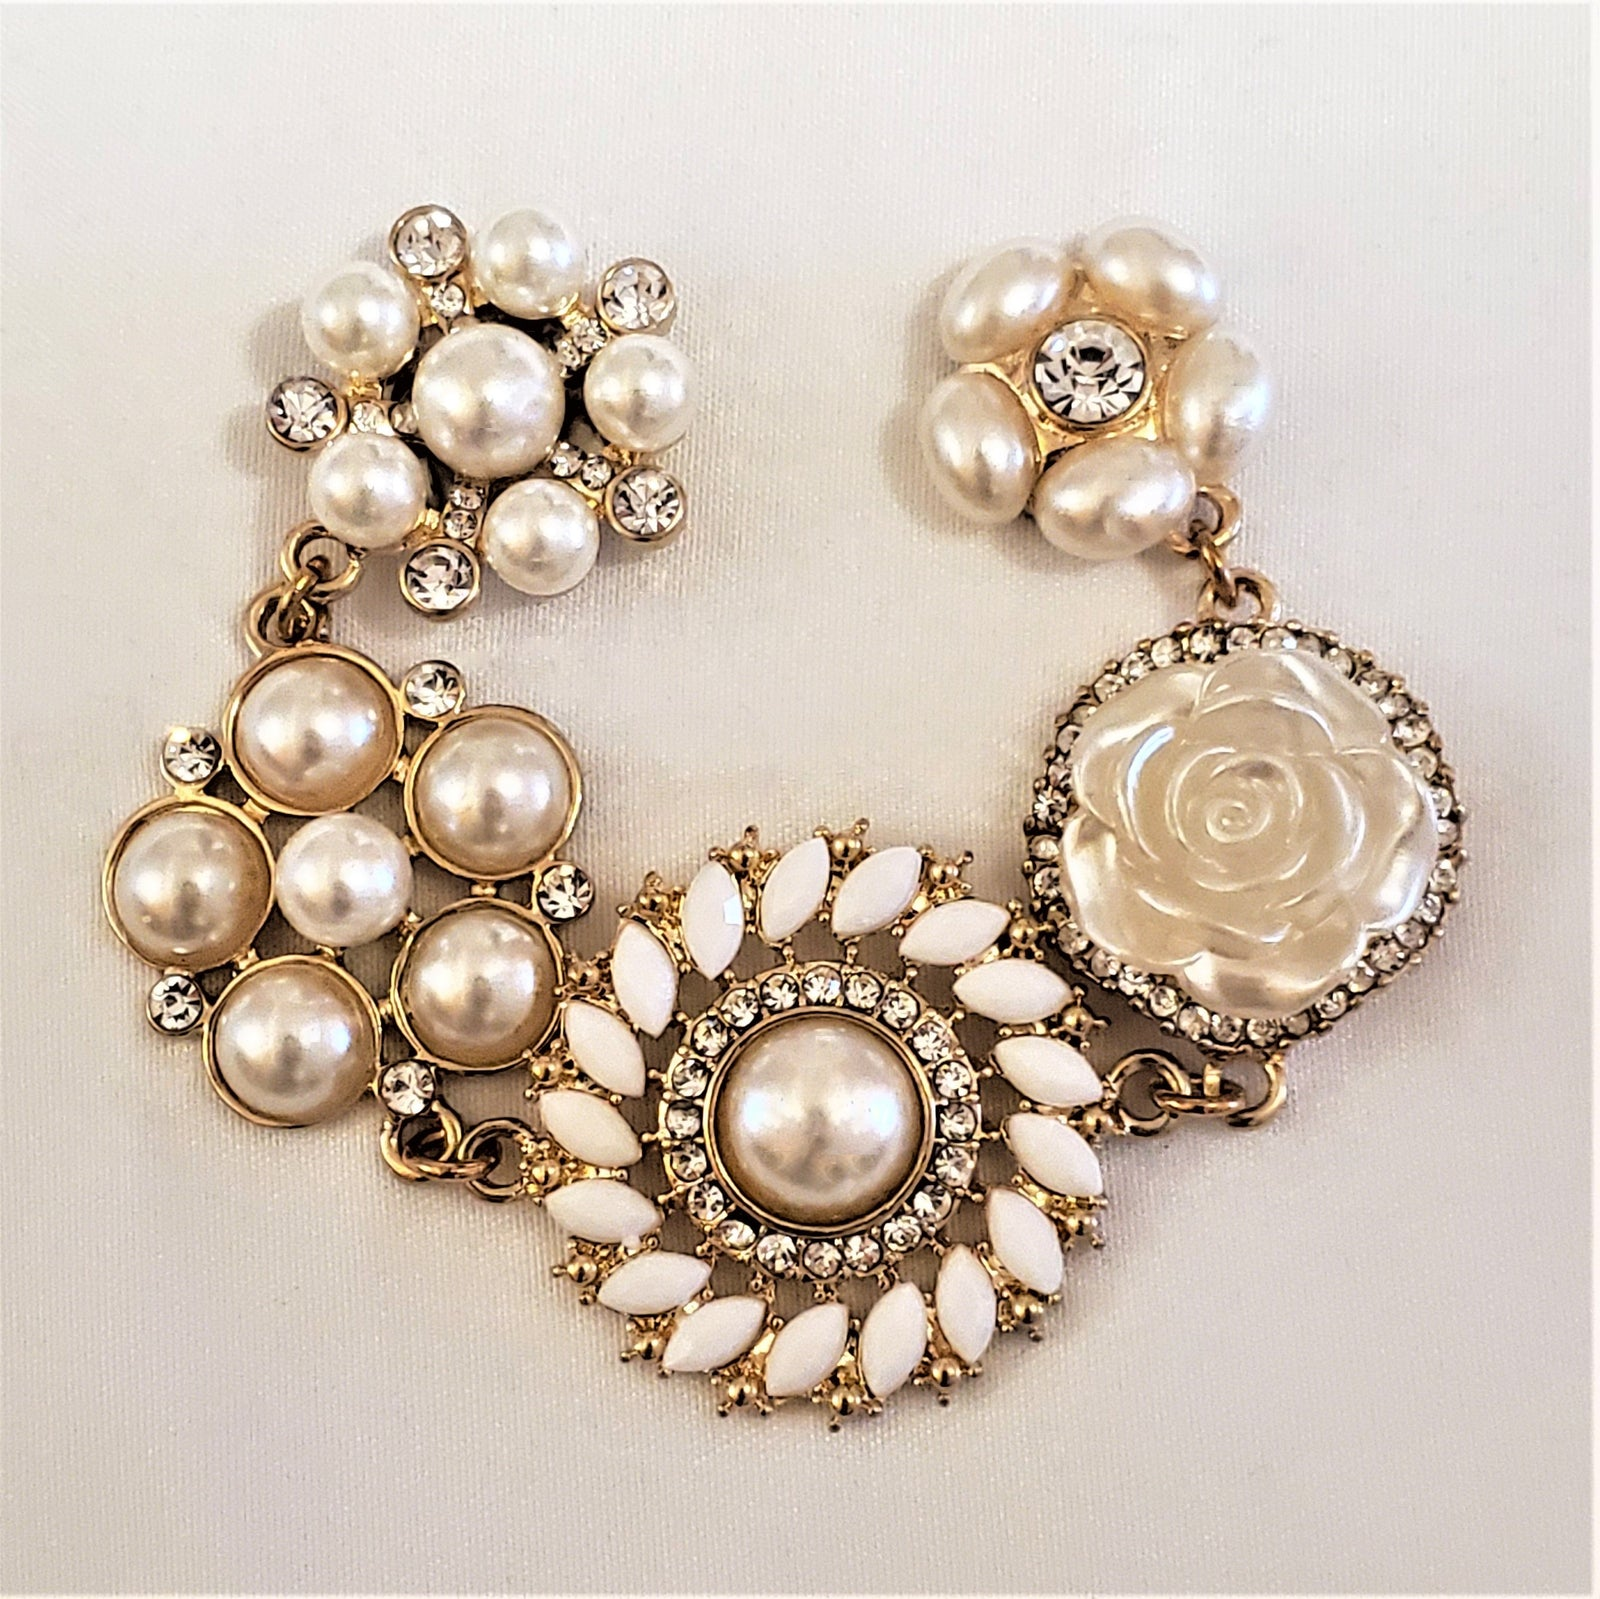 Pearl Flower Magnetic Jewelry String - QB's Magnetic Creations